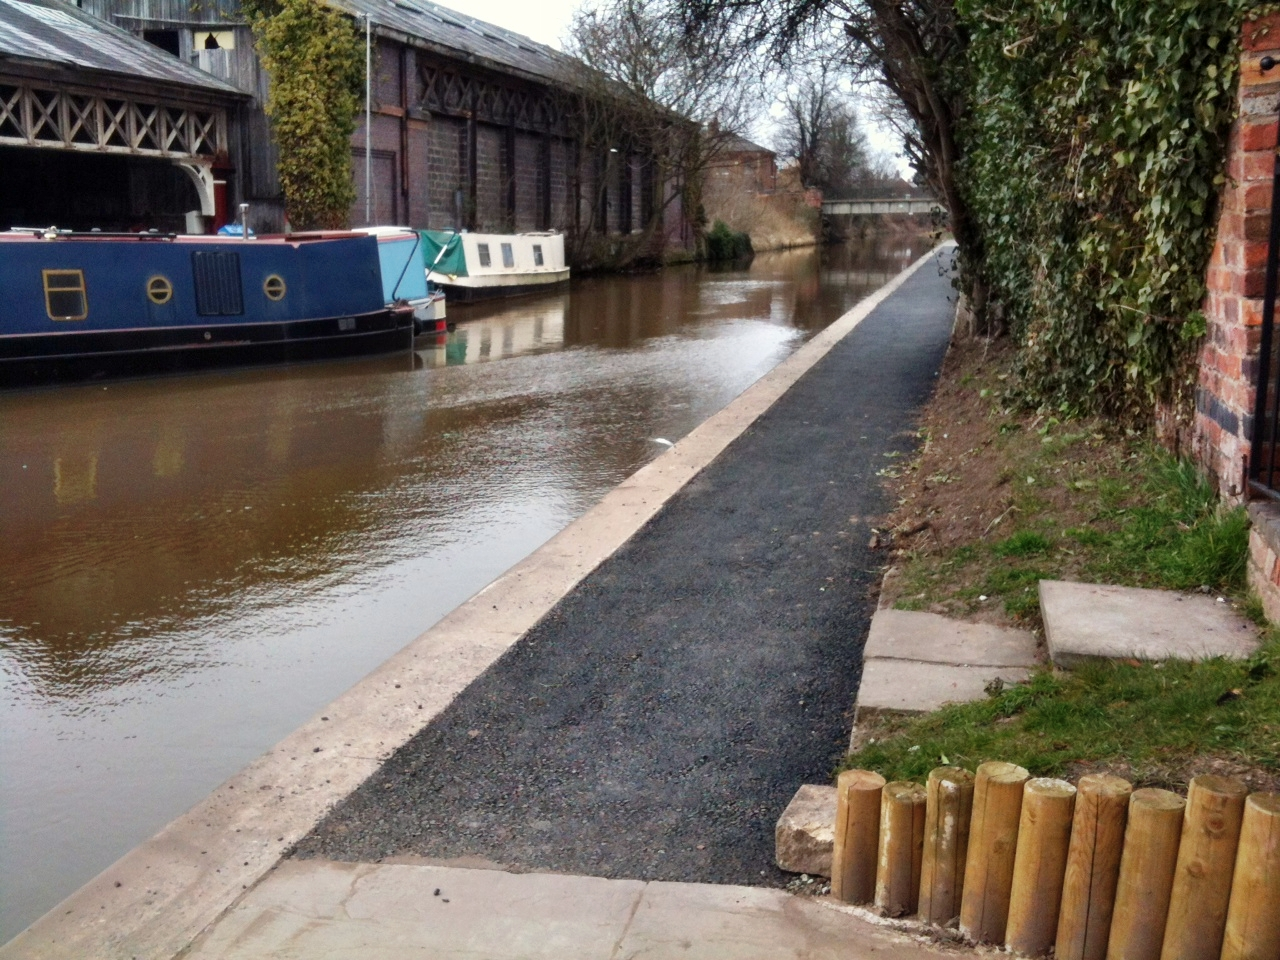 Towpath at Canal Basin